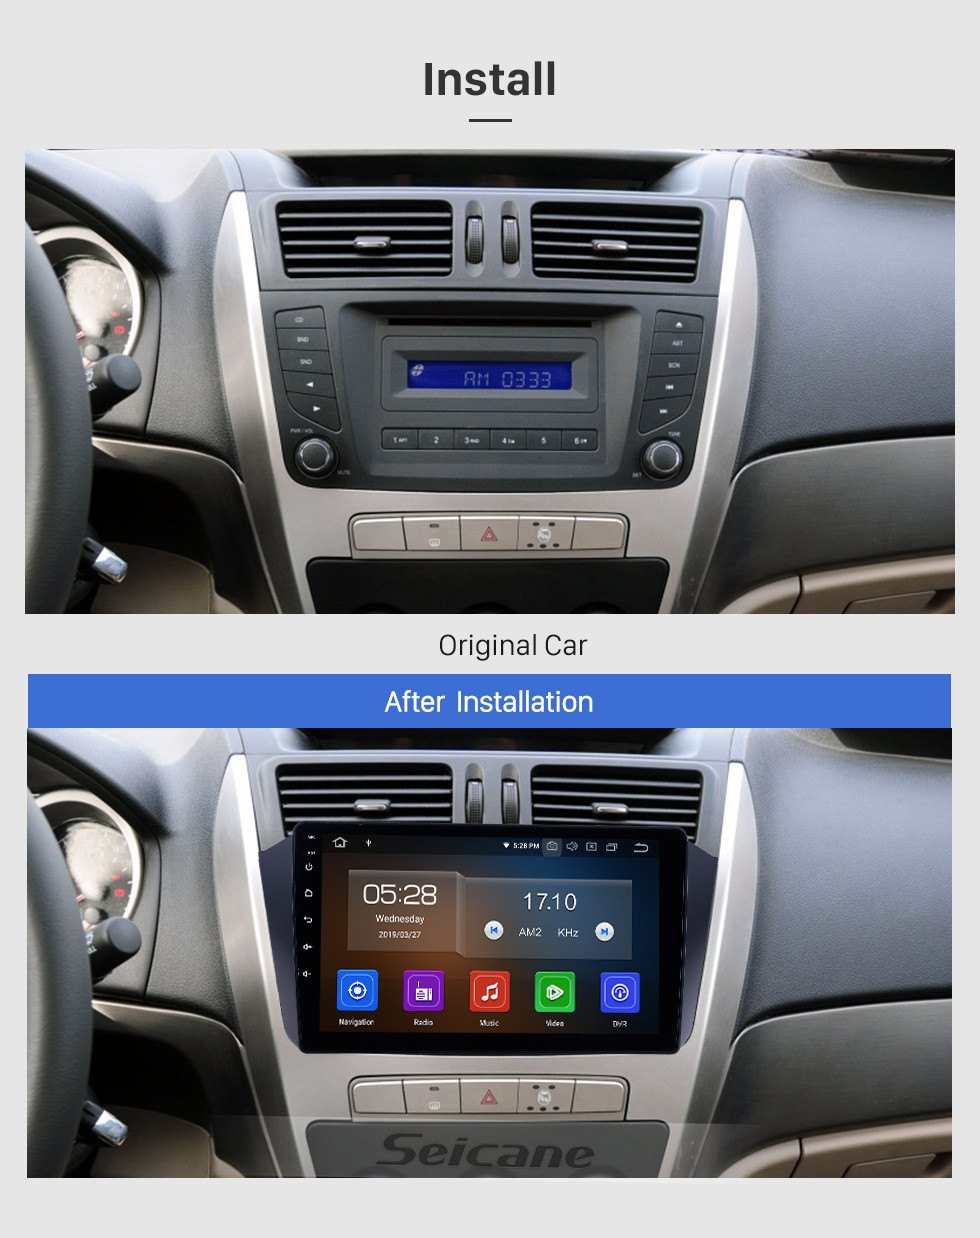 Seicane HD Touchscreen for 2012 2013 2014 Geely GX7 Radio Android 10.0 9 inch GPS Navigation System Bluetooth WIFI Carplay support DAB+